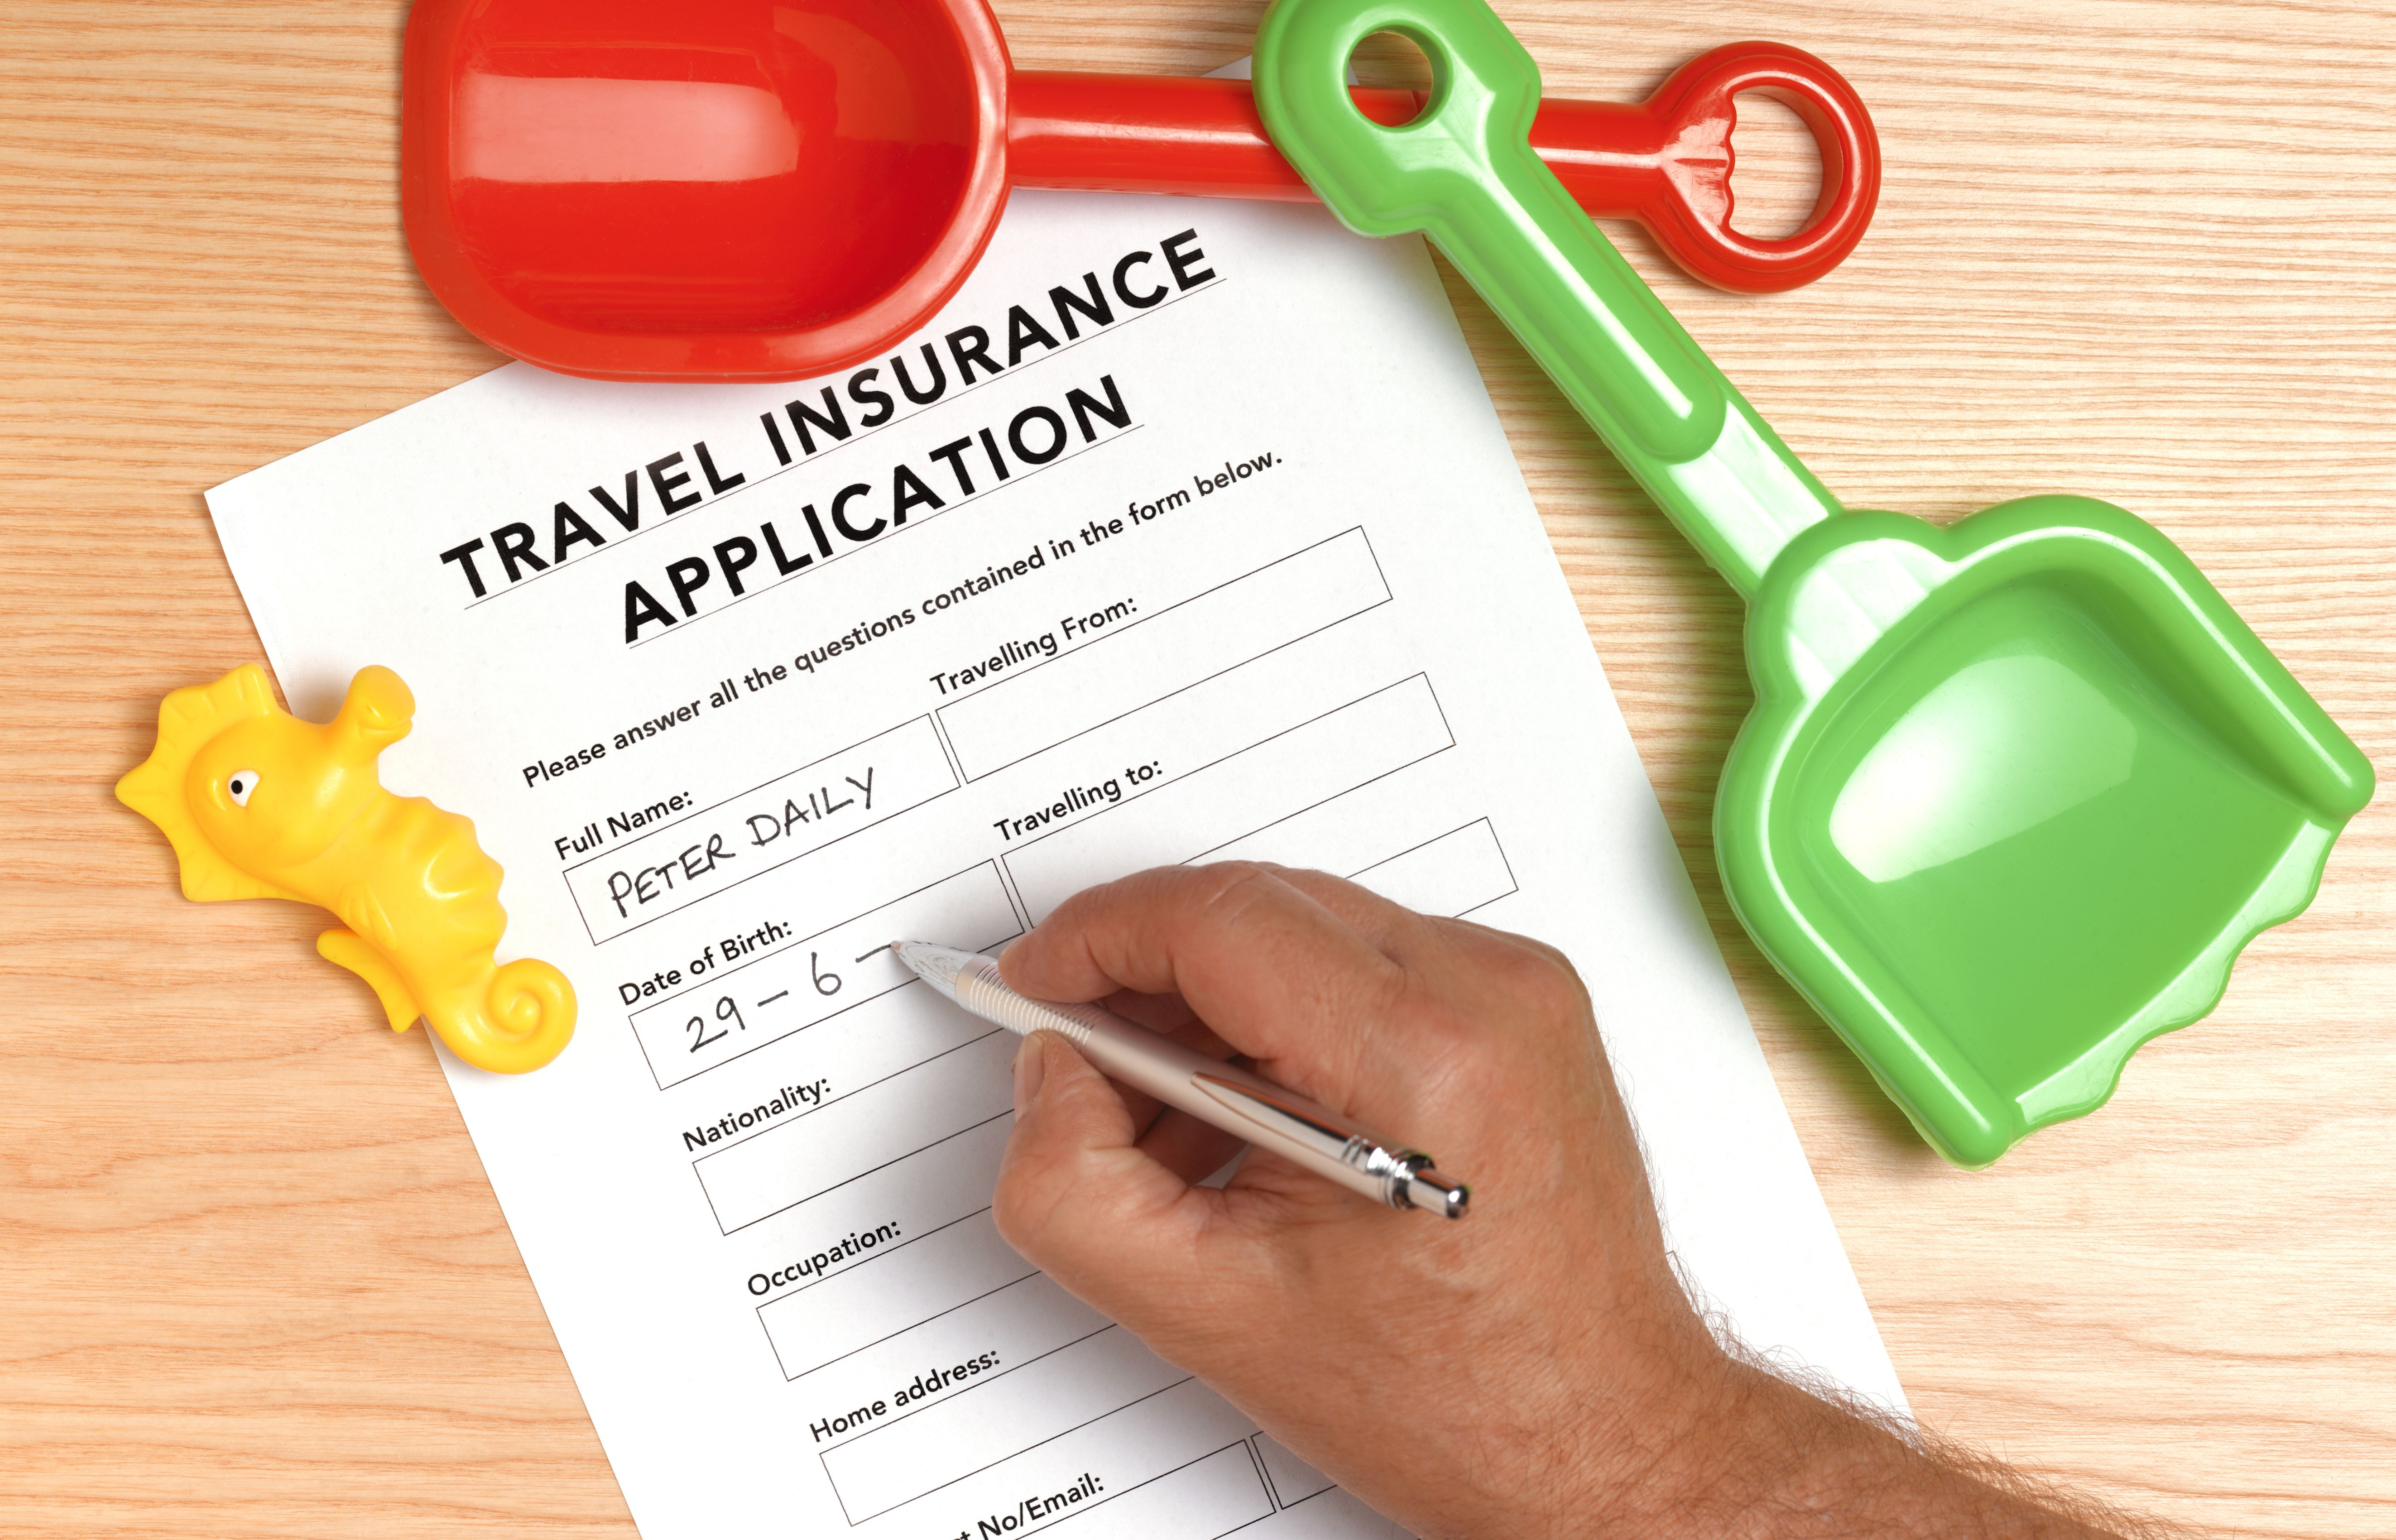 Insuring your trip can protect your travel investment.